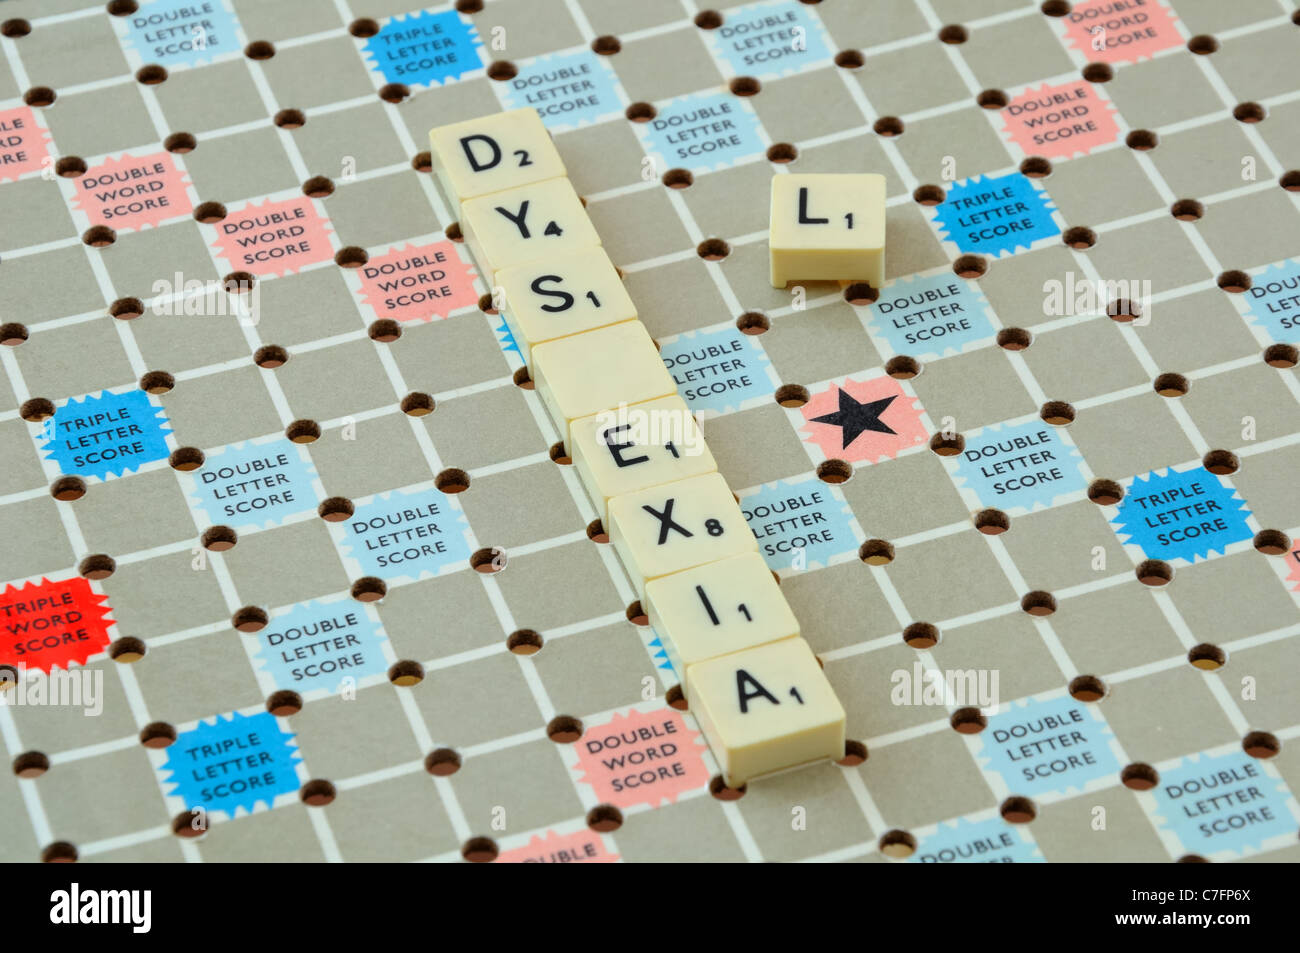 Scrabble Board Showing The Word Dyslexia With L Missing